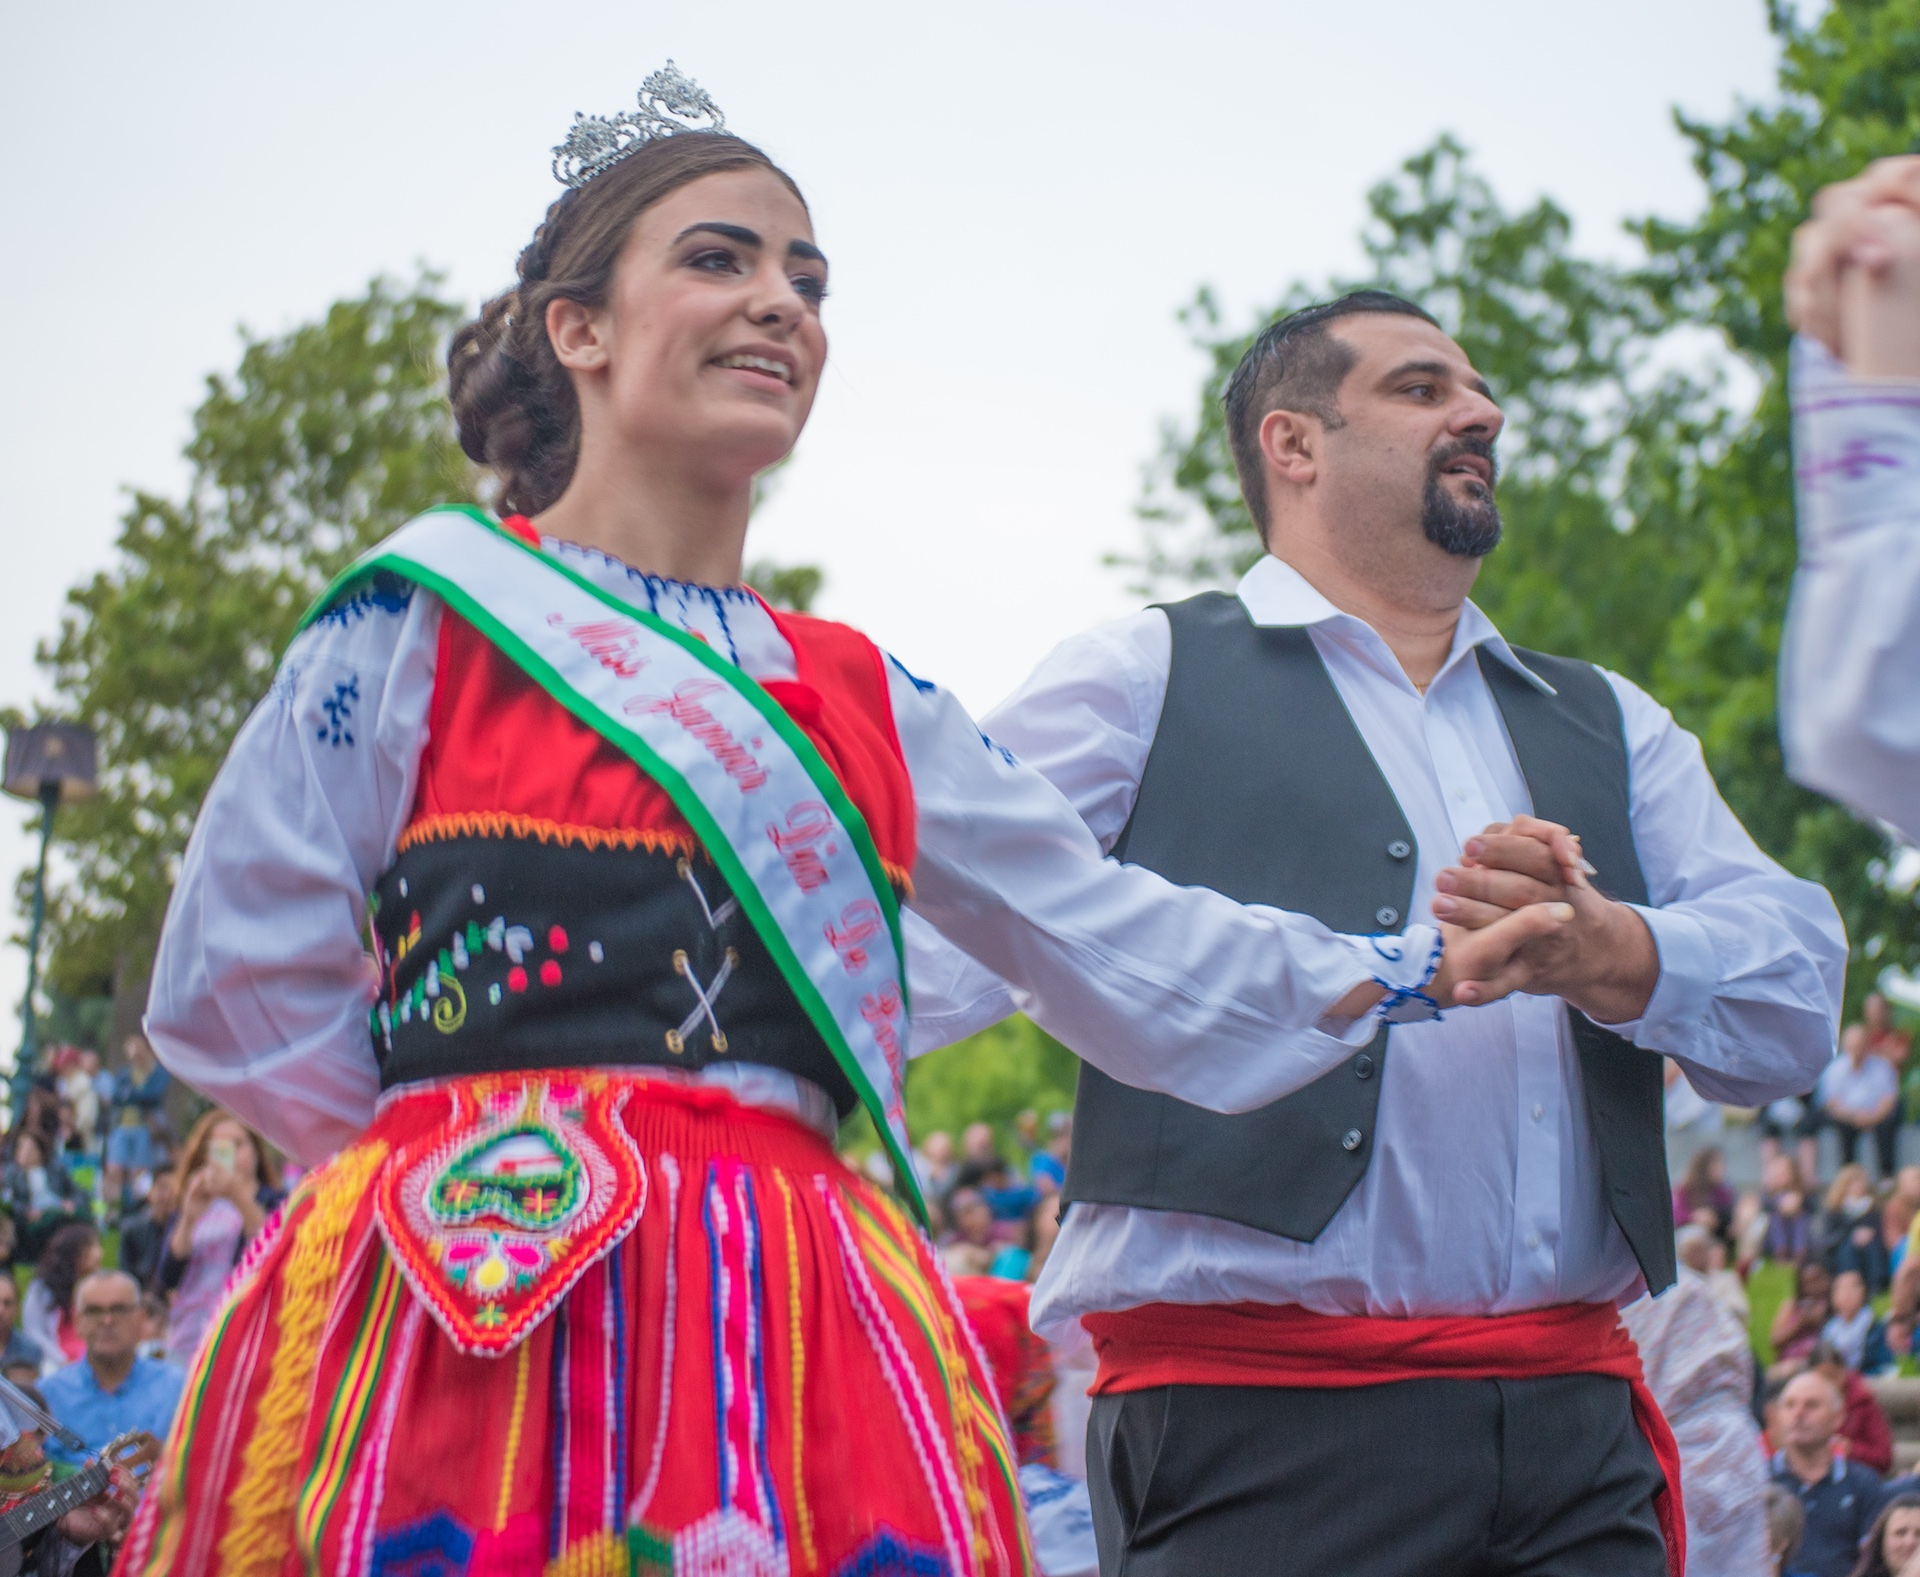 miss-junior-dia-de-portugal-rhode-island-performing-a-folkloric-dance-on-waterplace-park-basin-stage